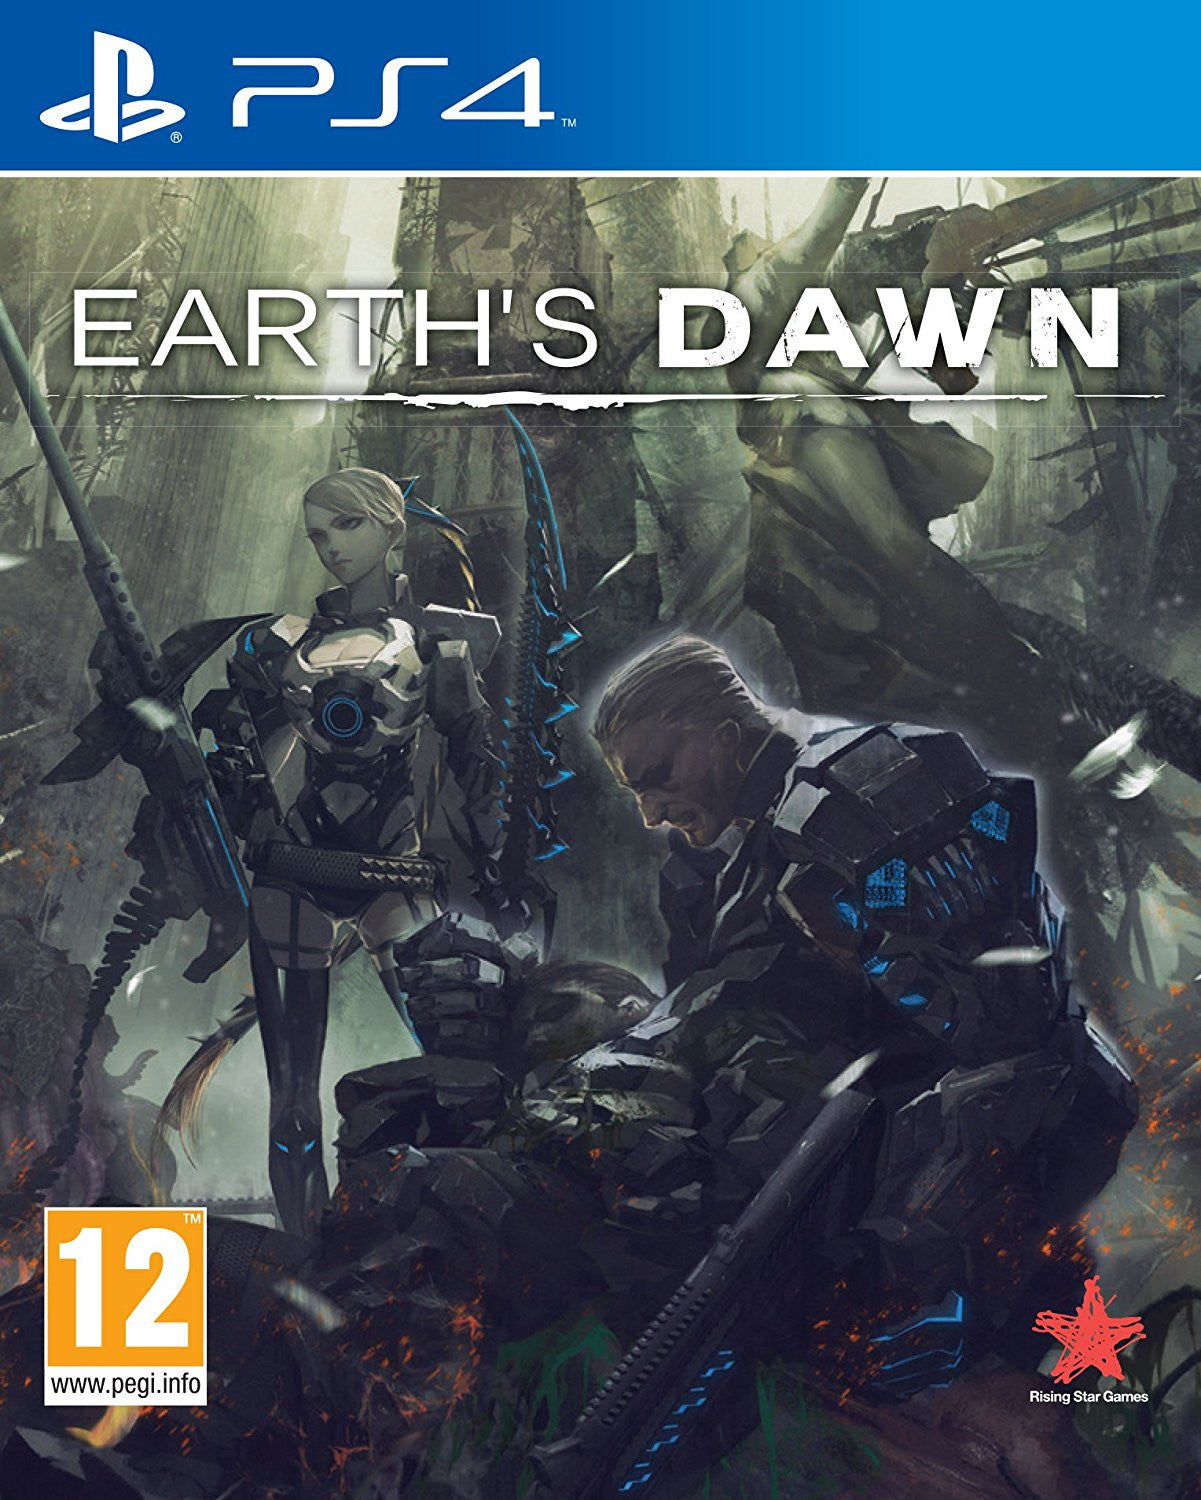 Earths Dawn - PS4 - Video Games by Rising Star Games The Chelsea Gamer